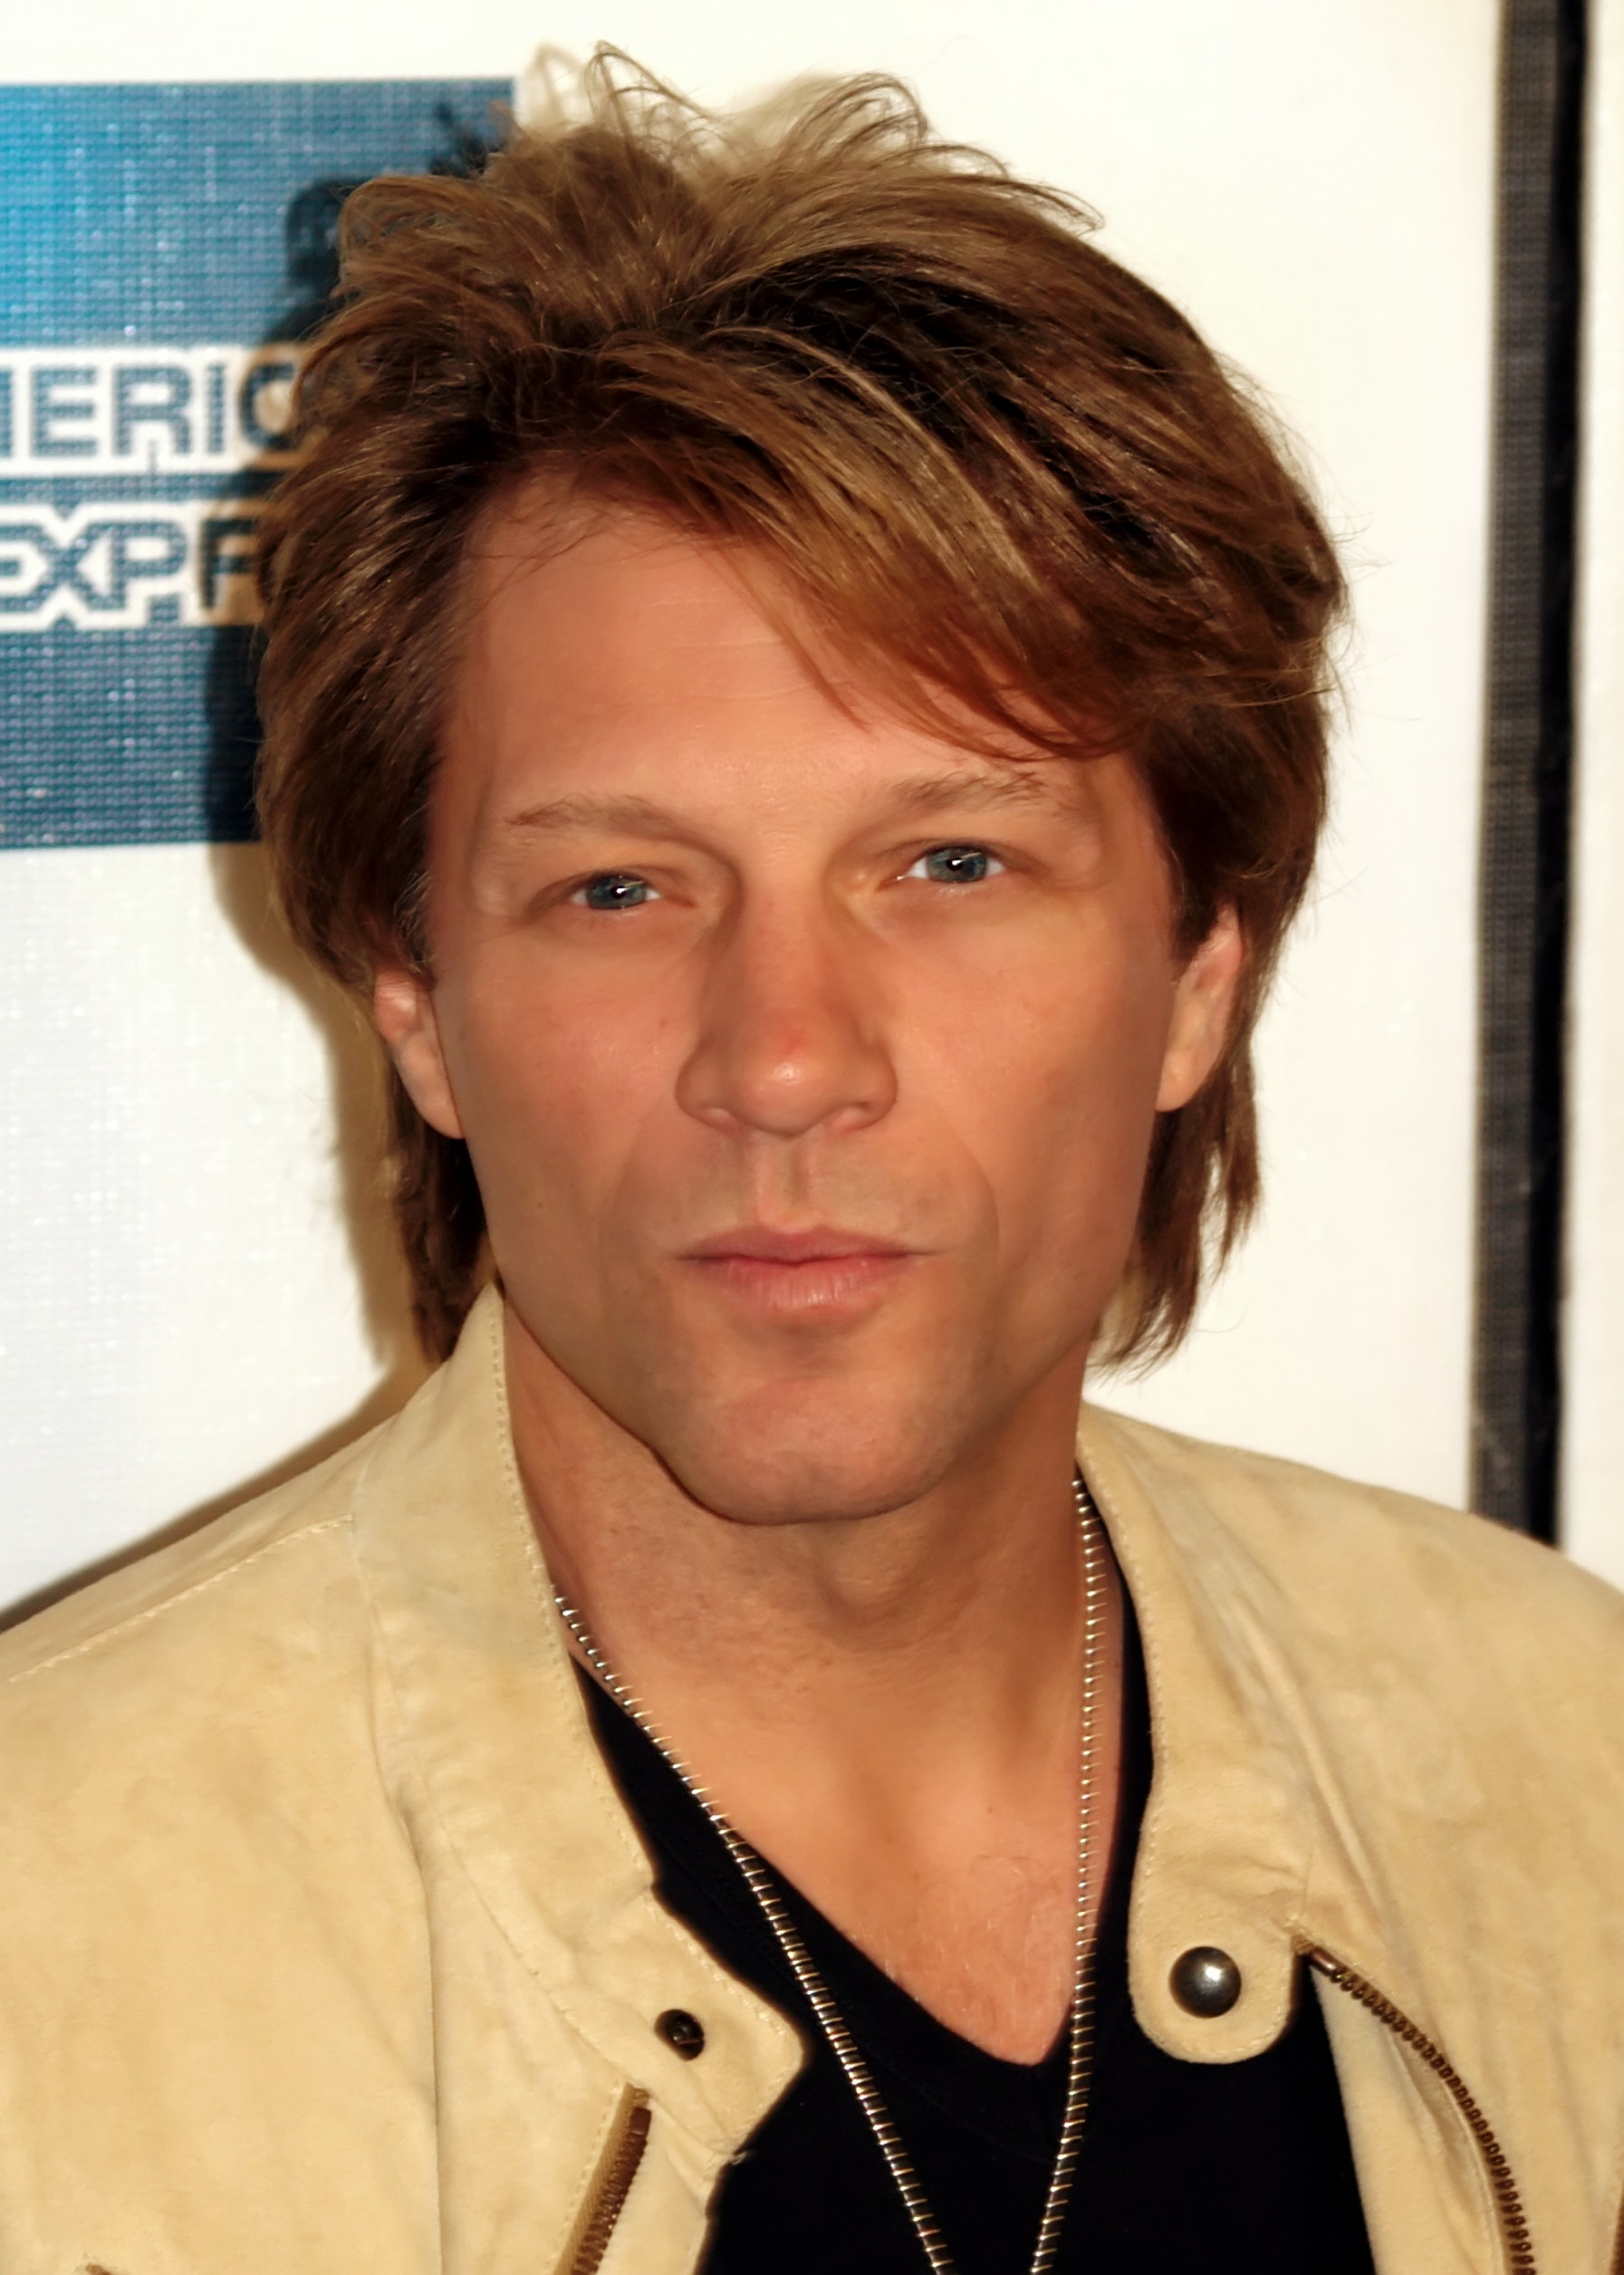 Photo of Jon Bon Jovi